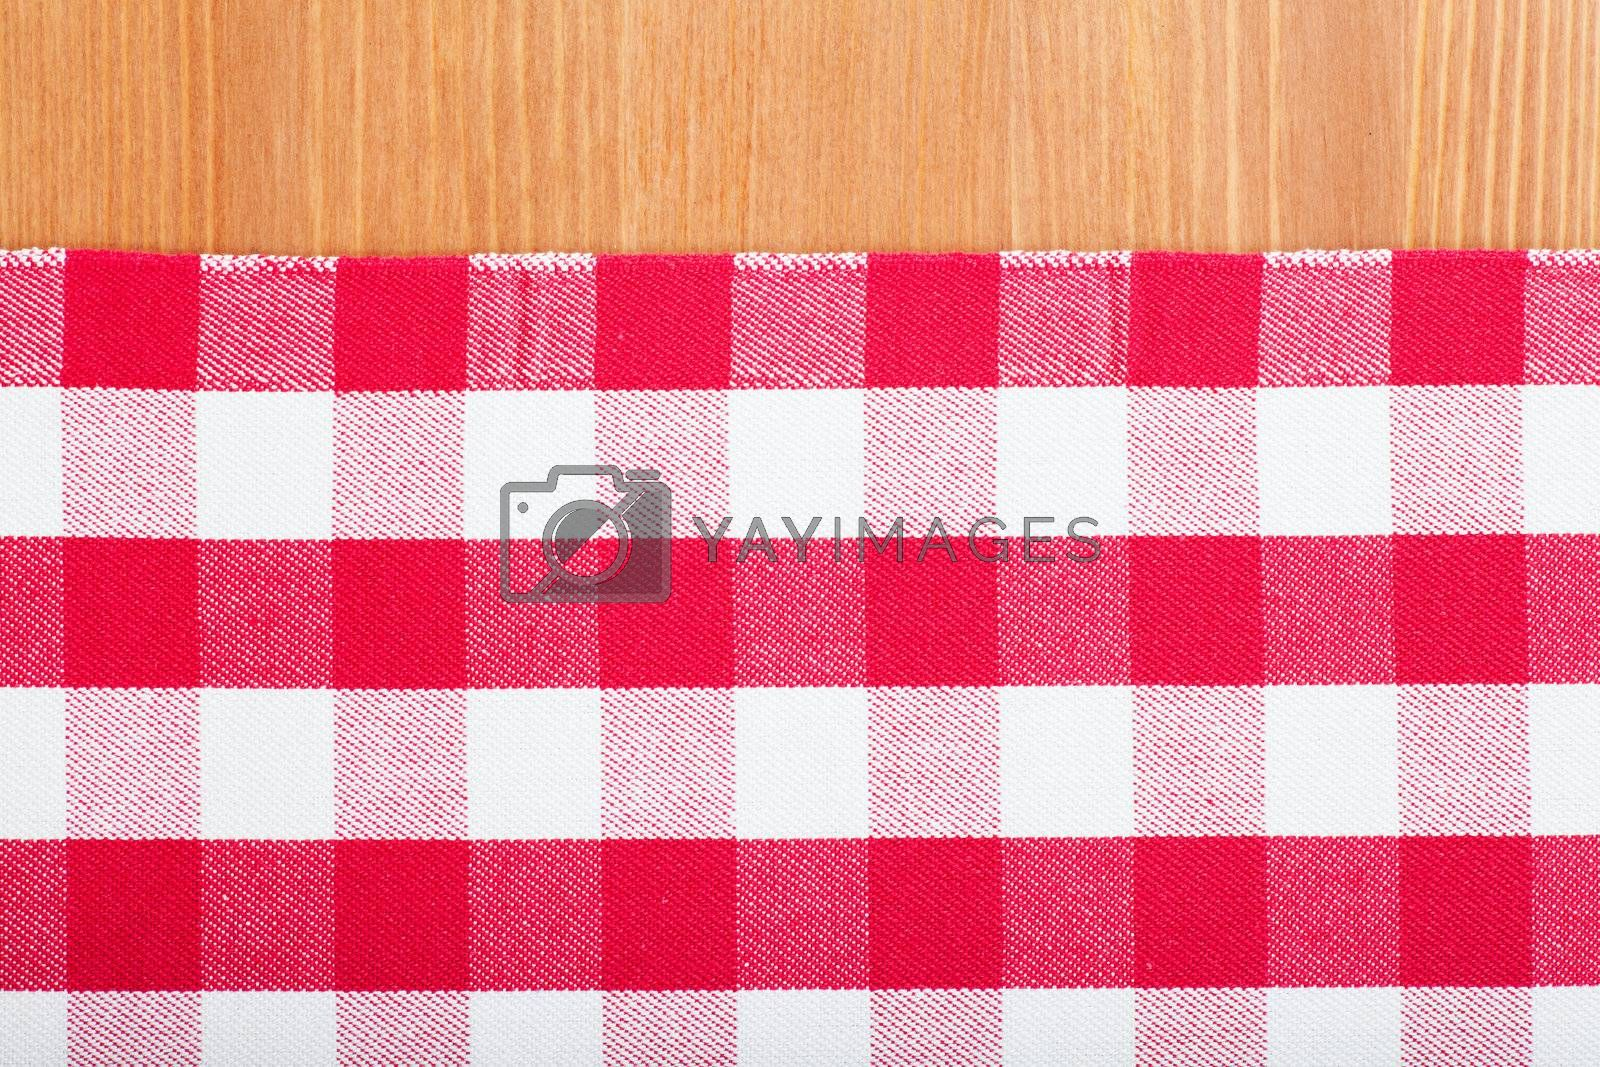 Checked with red and white tablecloth on a wooden table